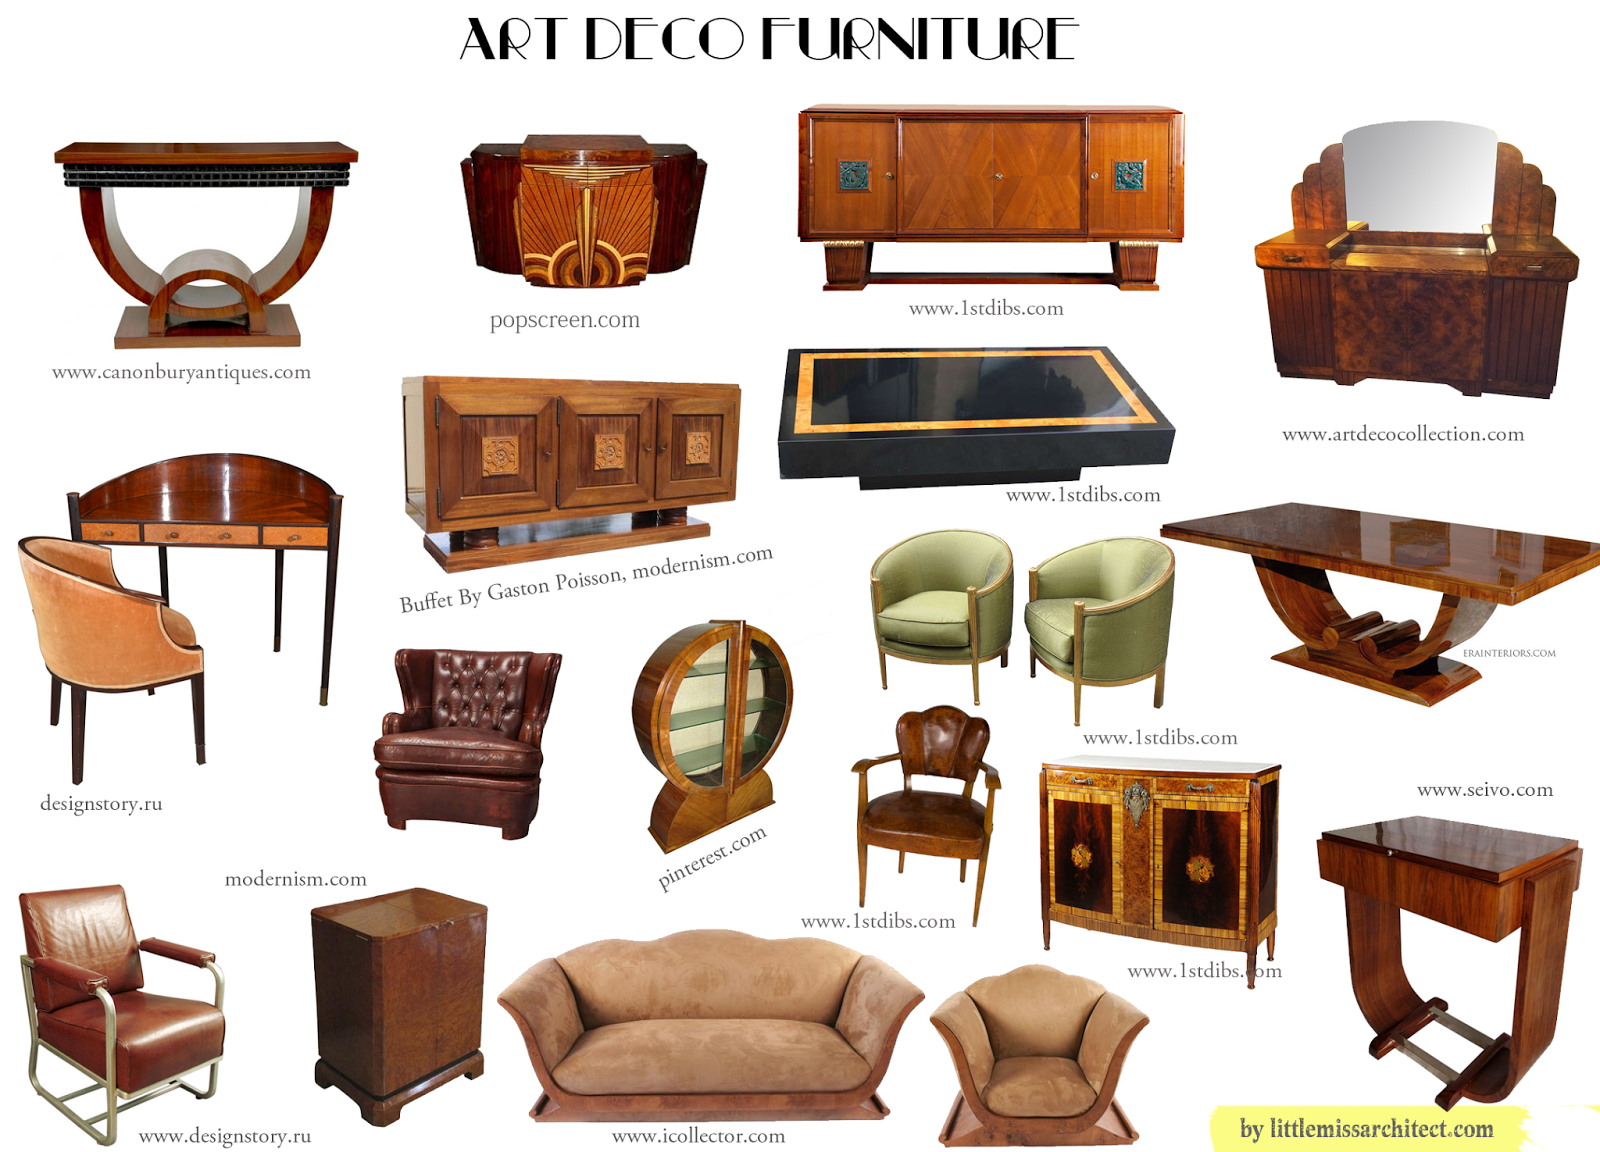 Art Deco Furniture  Fotolip.com Rich image and wallpaper  Art